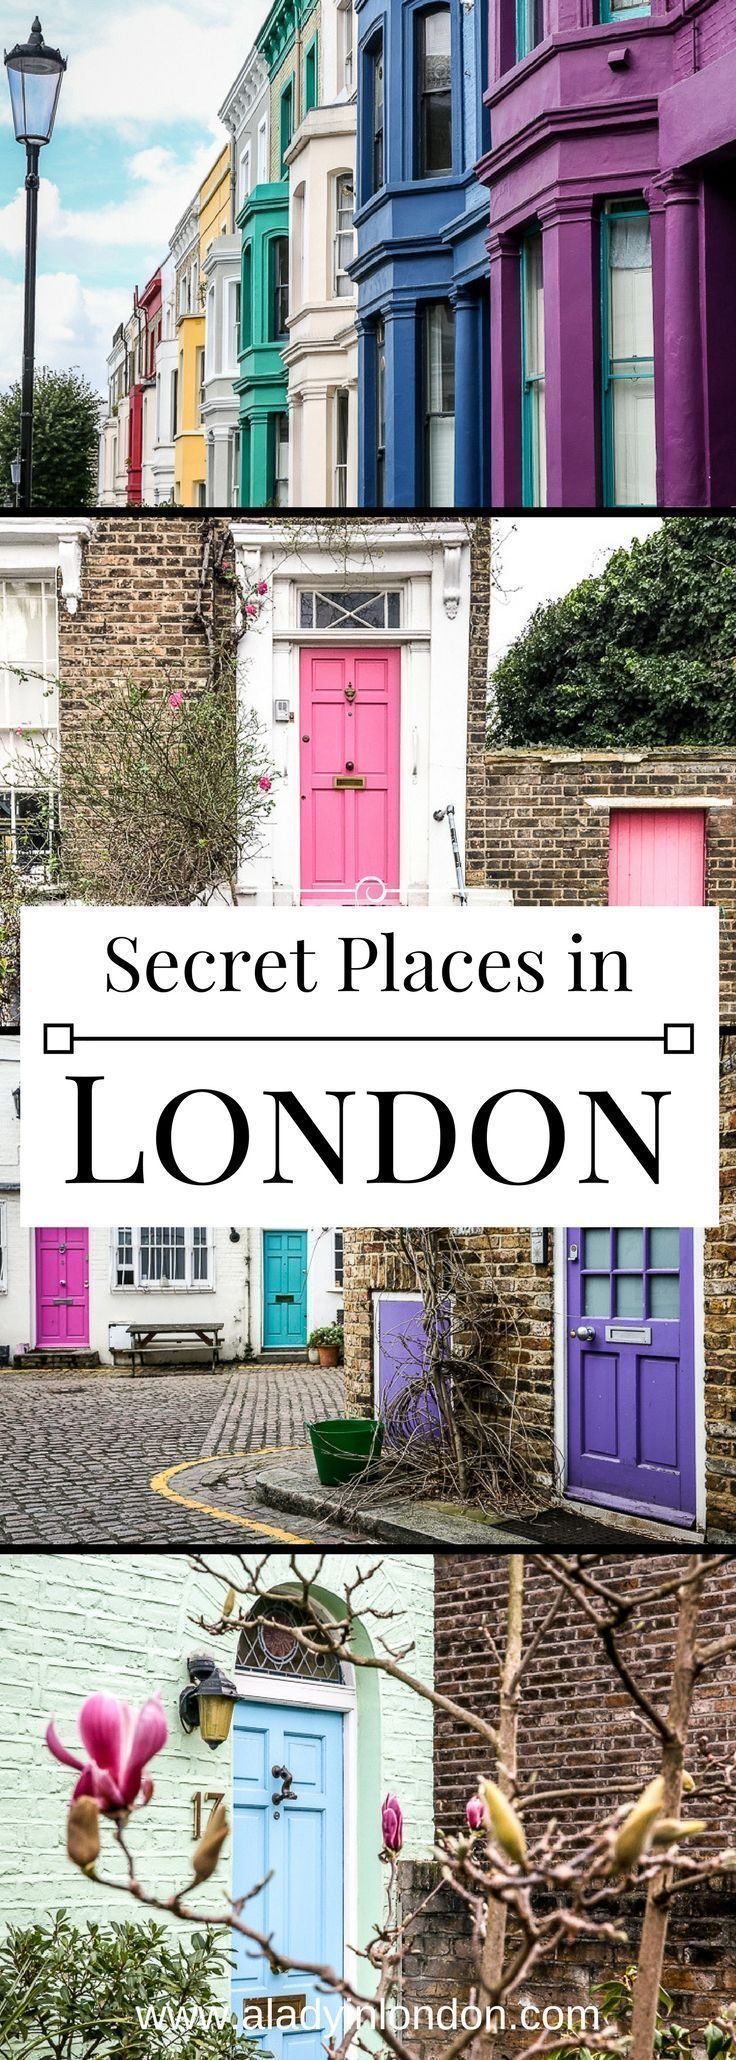 7 Secret Places in London – You Have to Discover These Hidden Spots